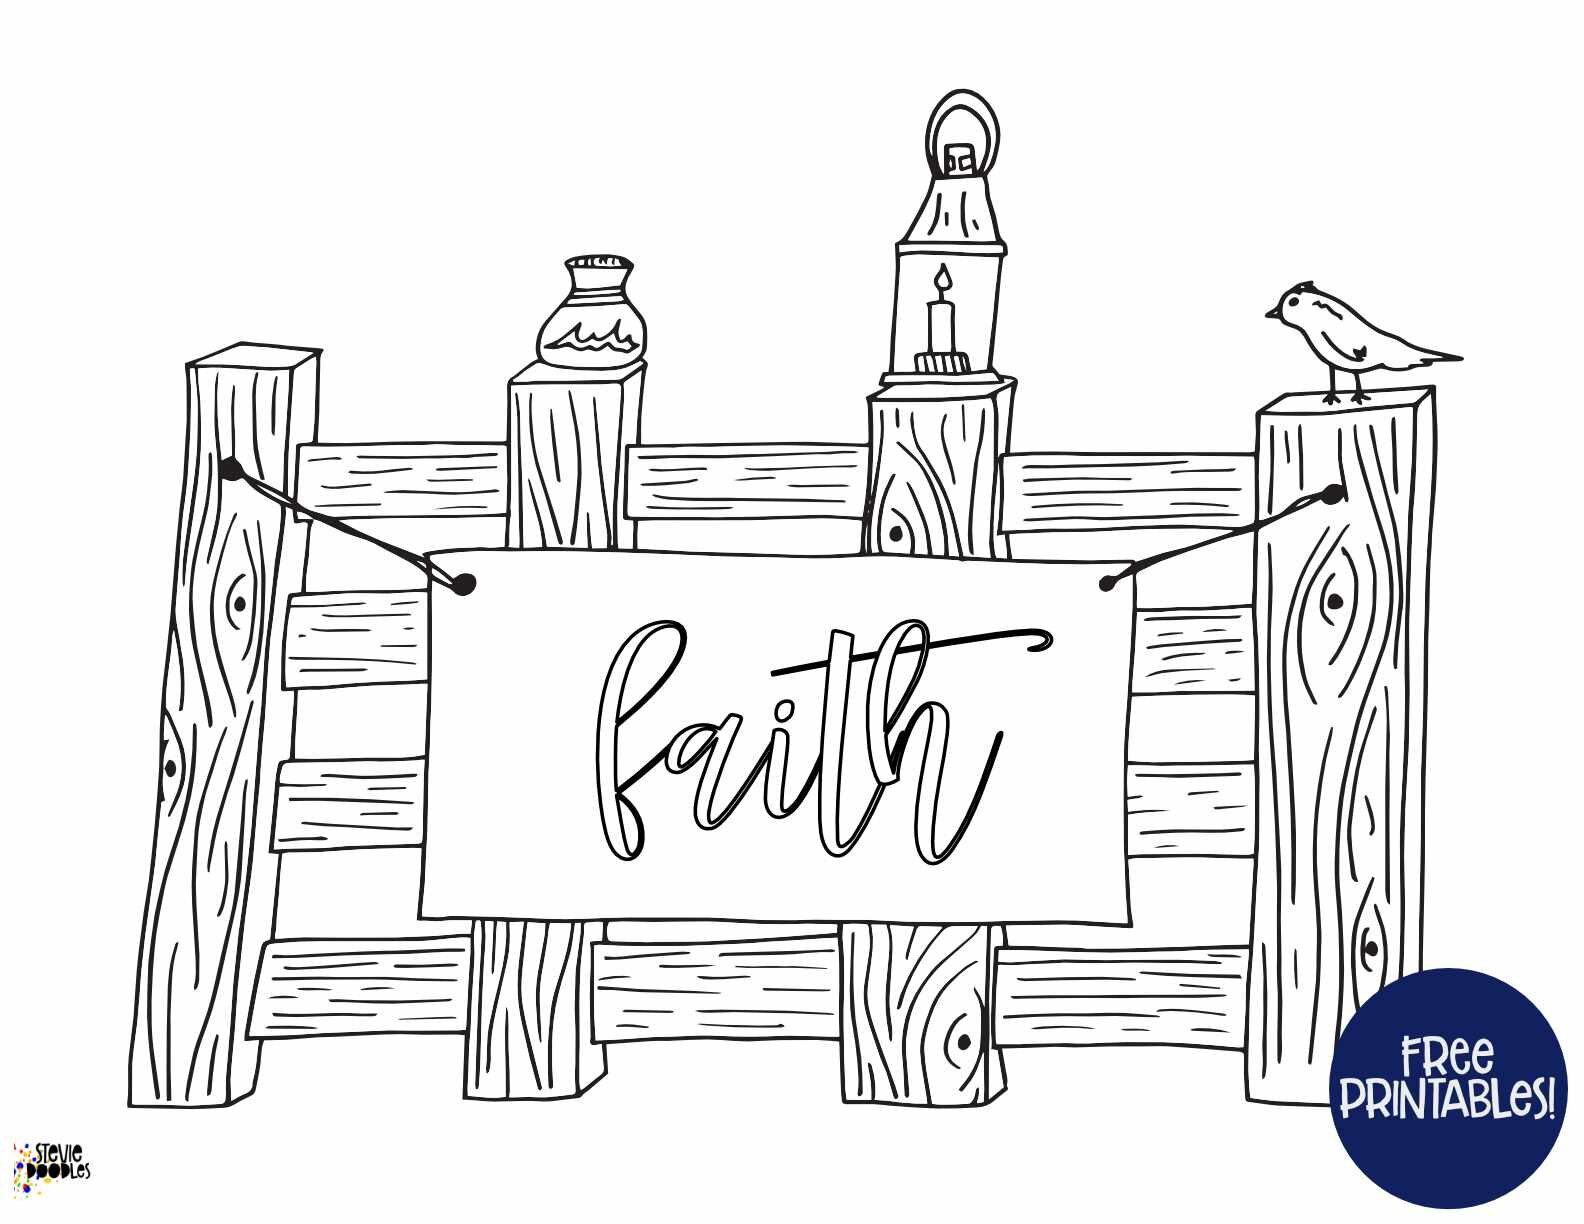 Over 1000 free coloring pages at Stevie DoodlesFaith!Inspiring quote free coloring pages